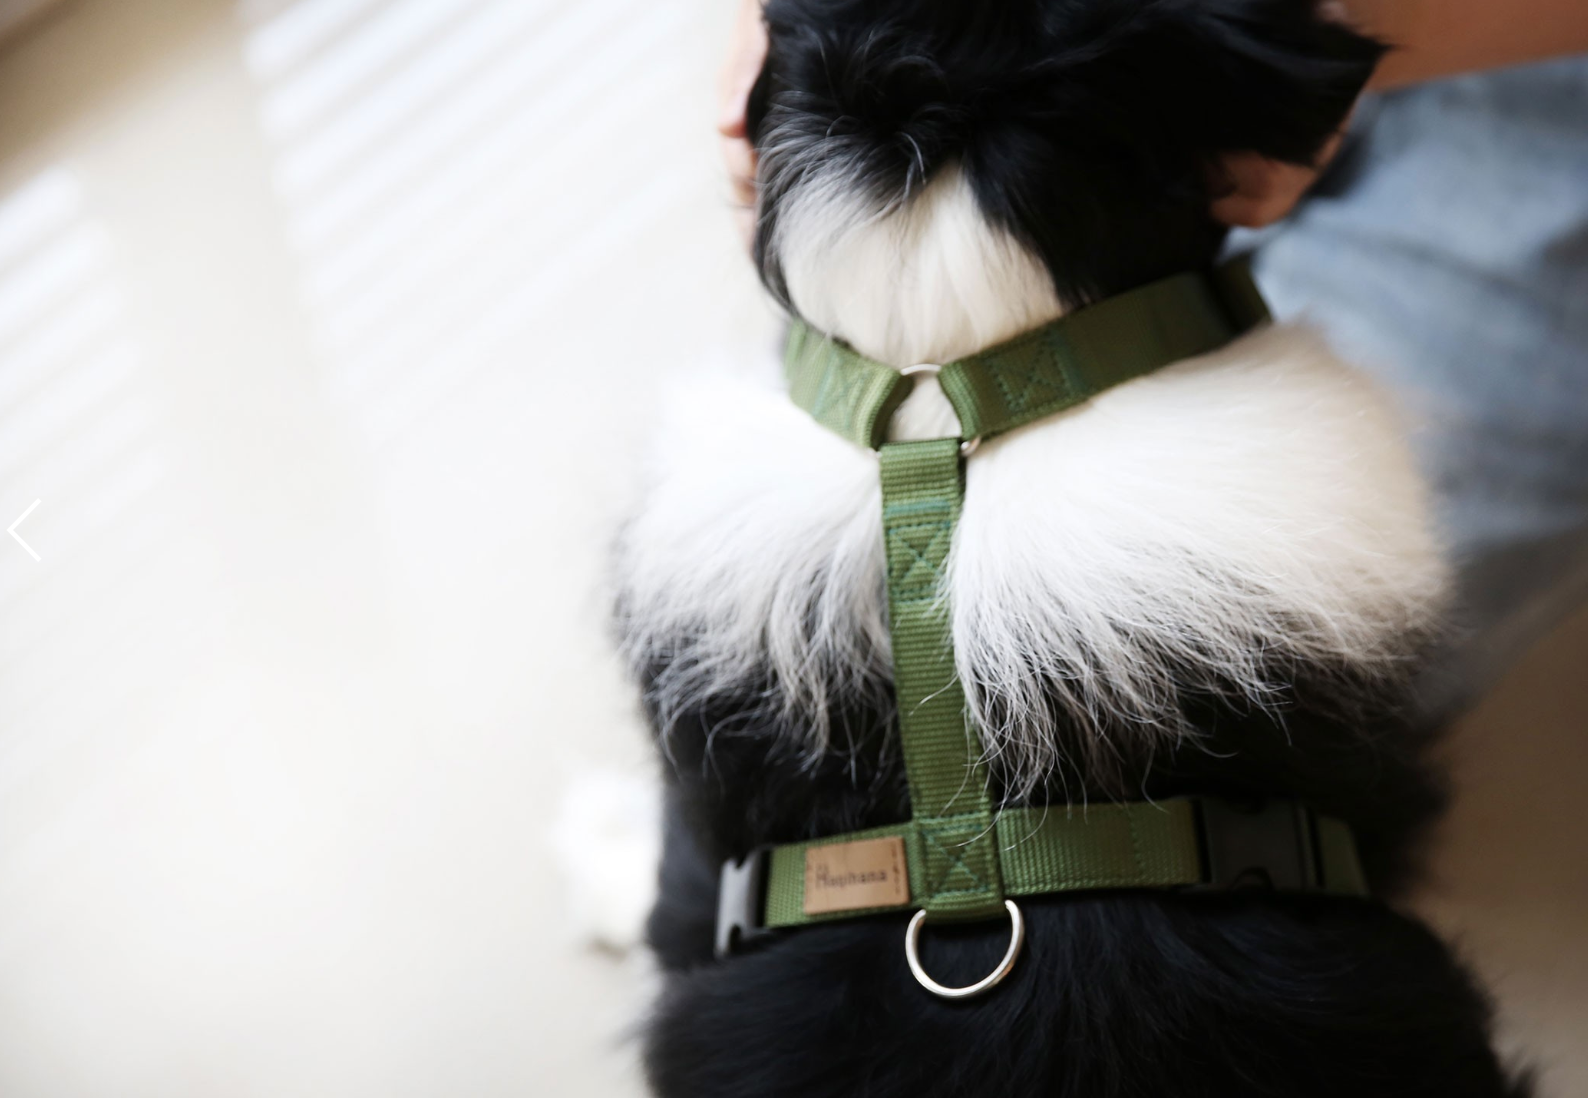 Haqihana Green Harness - Cats, Dogs, Haqihana, Harnesses, Puppy - Shop Vanillapup - Online Pet Shop